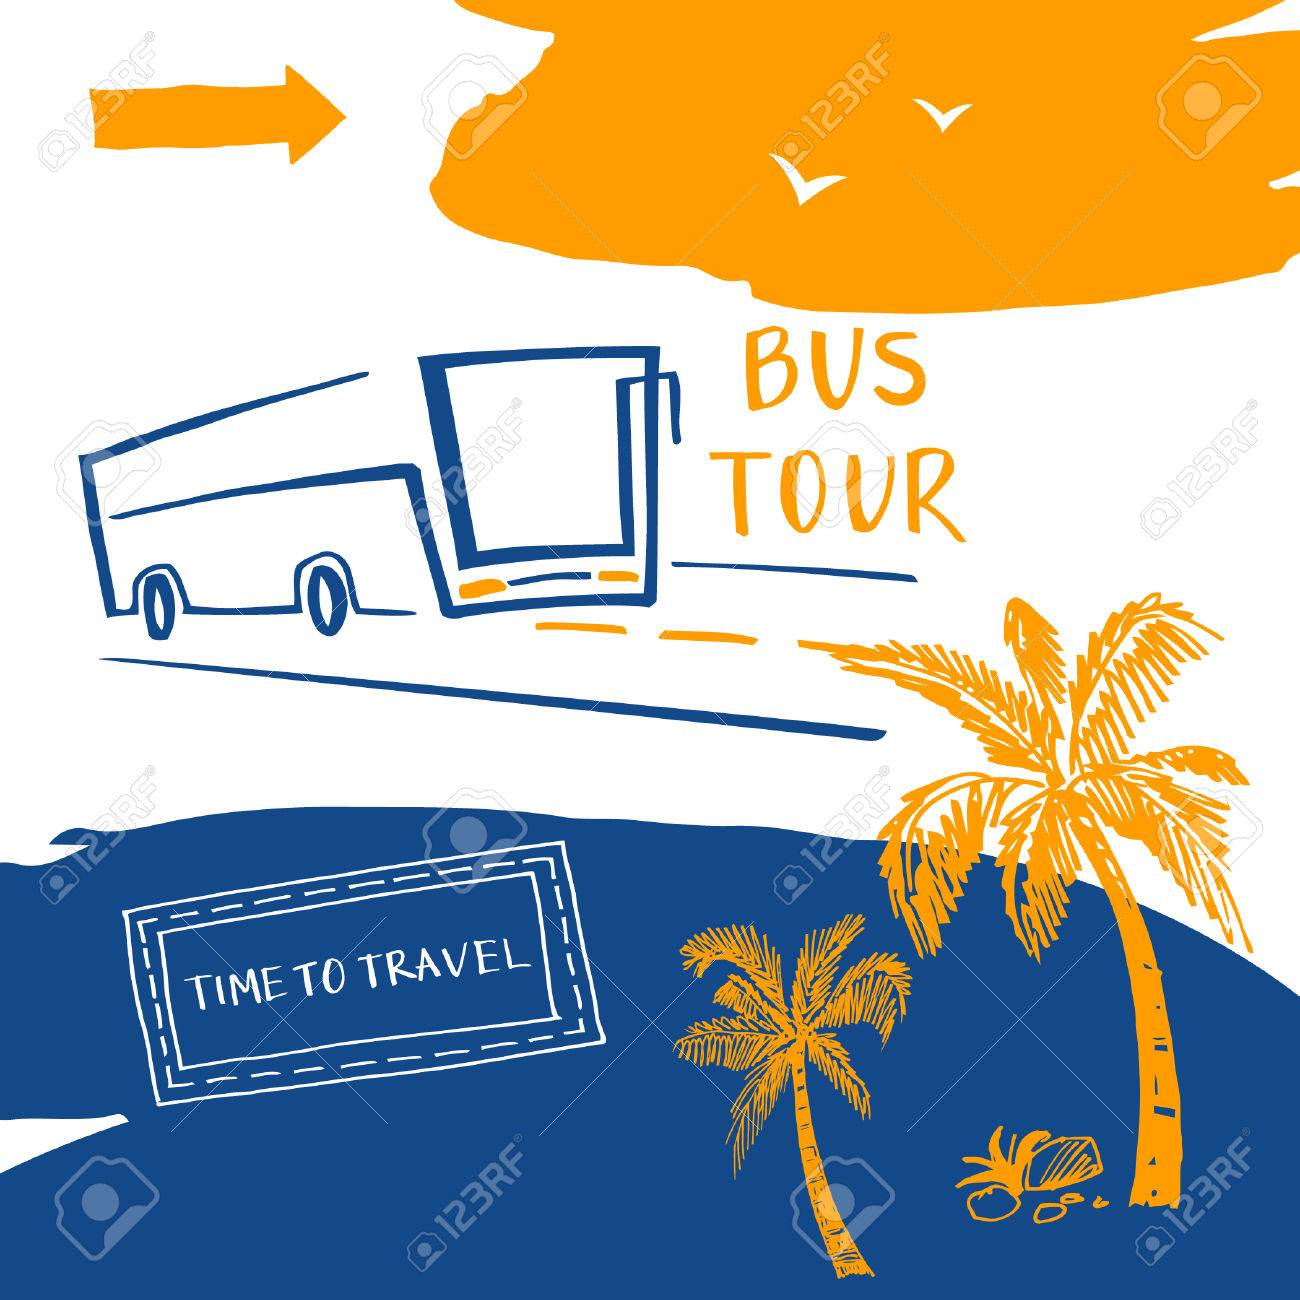 Poster For The Travel And Tourism Resort Bus Agency Vector Background Summer